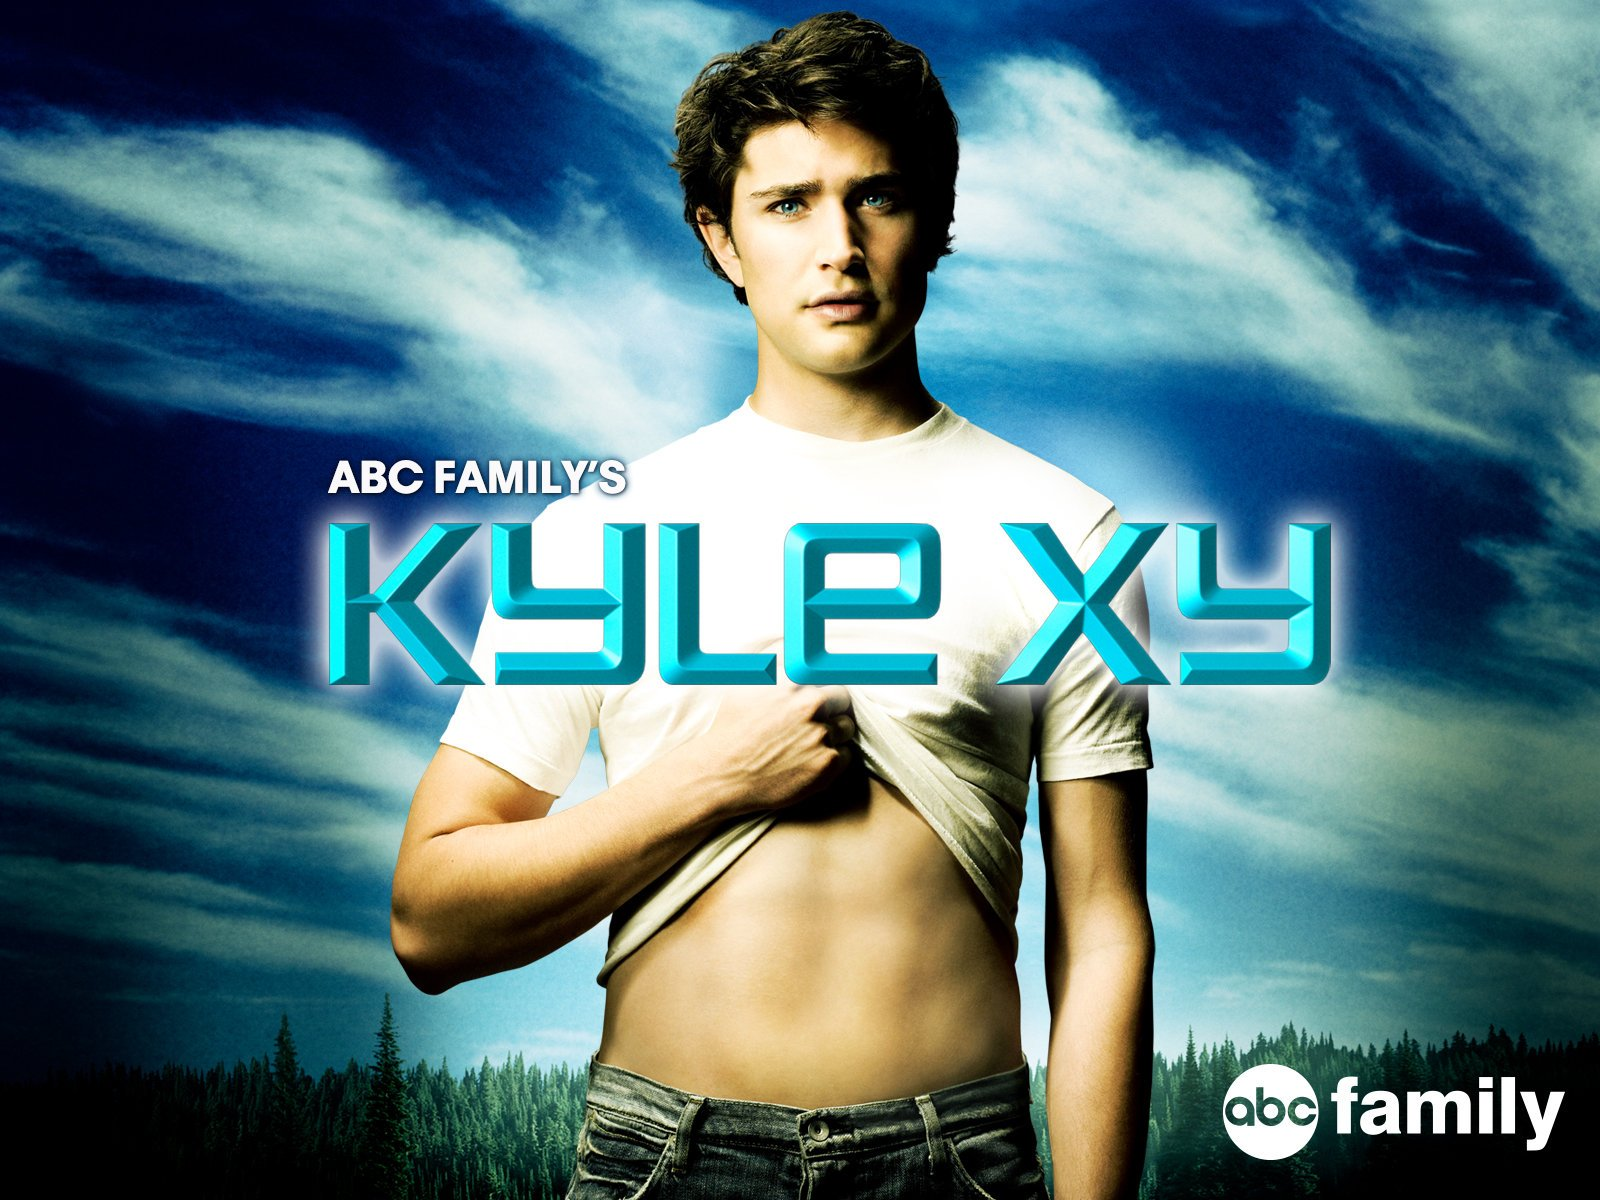 download kyle xy season 1 subtitles